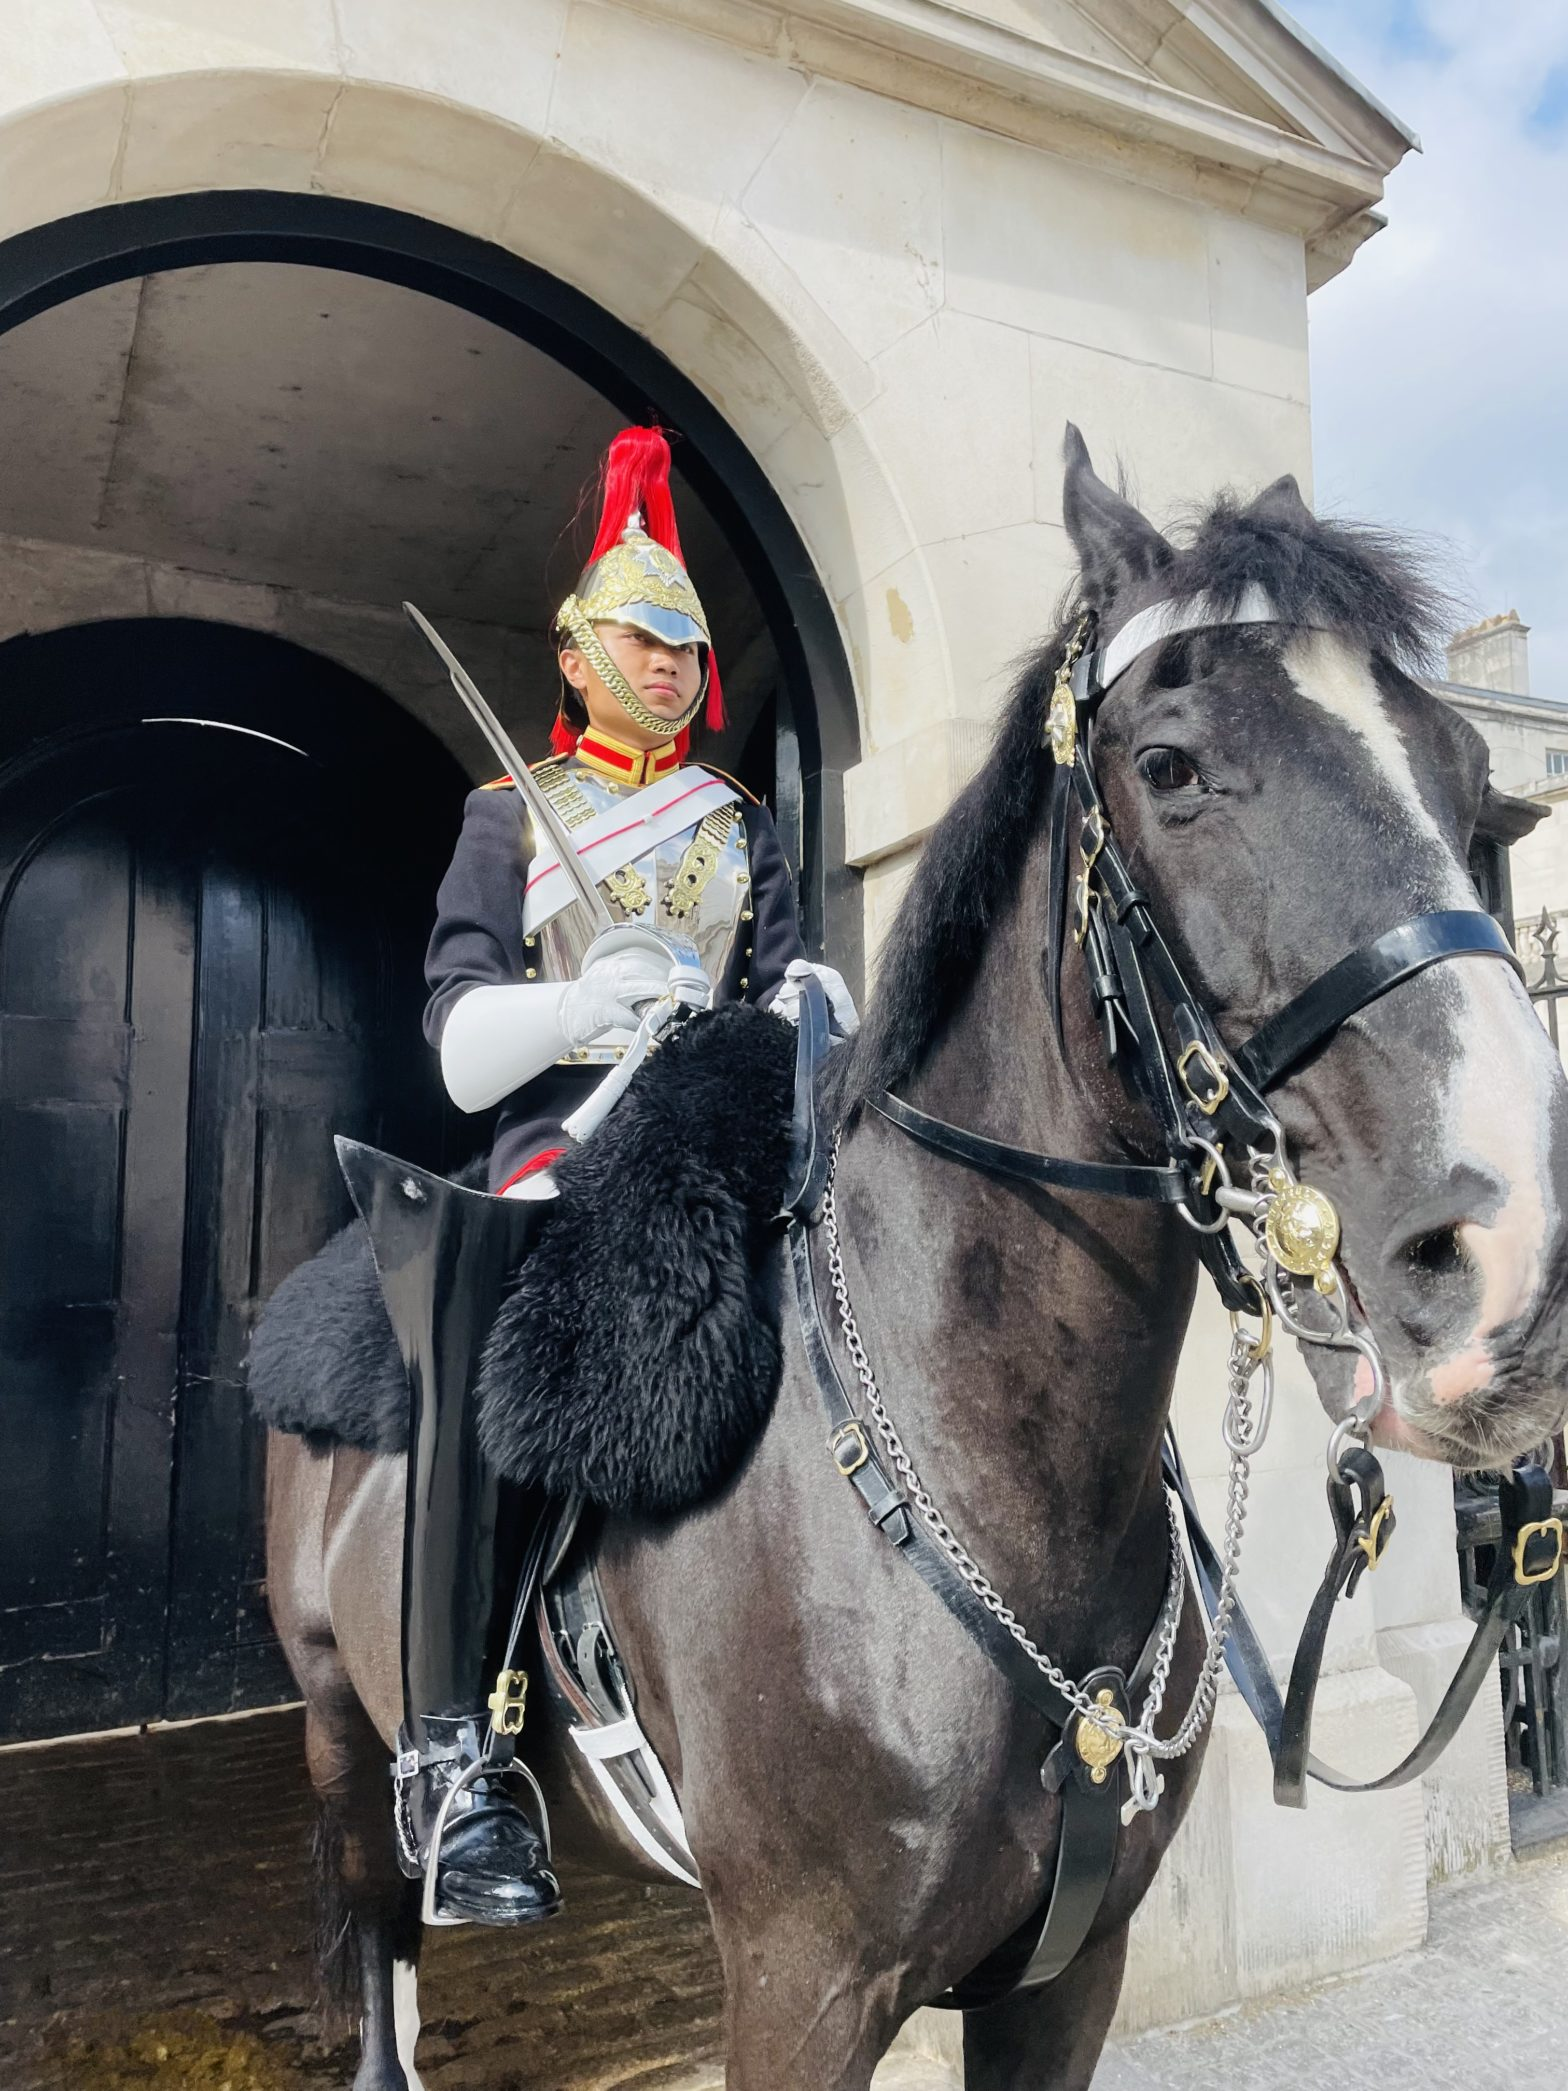 This picture captures a mounted trooper on duty at the entrance of the horse guards. Shortly after this picture was taken, I unexpectedly witnessed the horse guard parade where a cavalry of horses come to switch out the horses who have been stationed there for an hour. A cool experience!